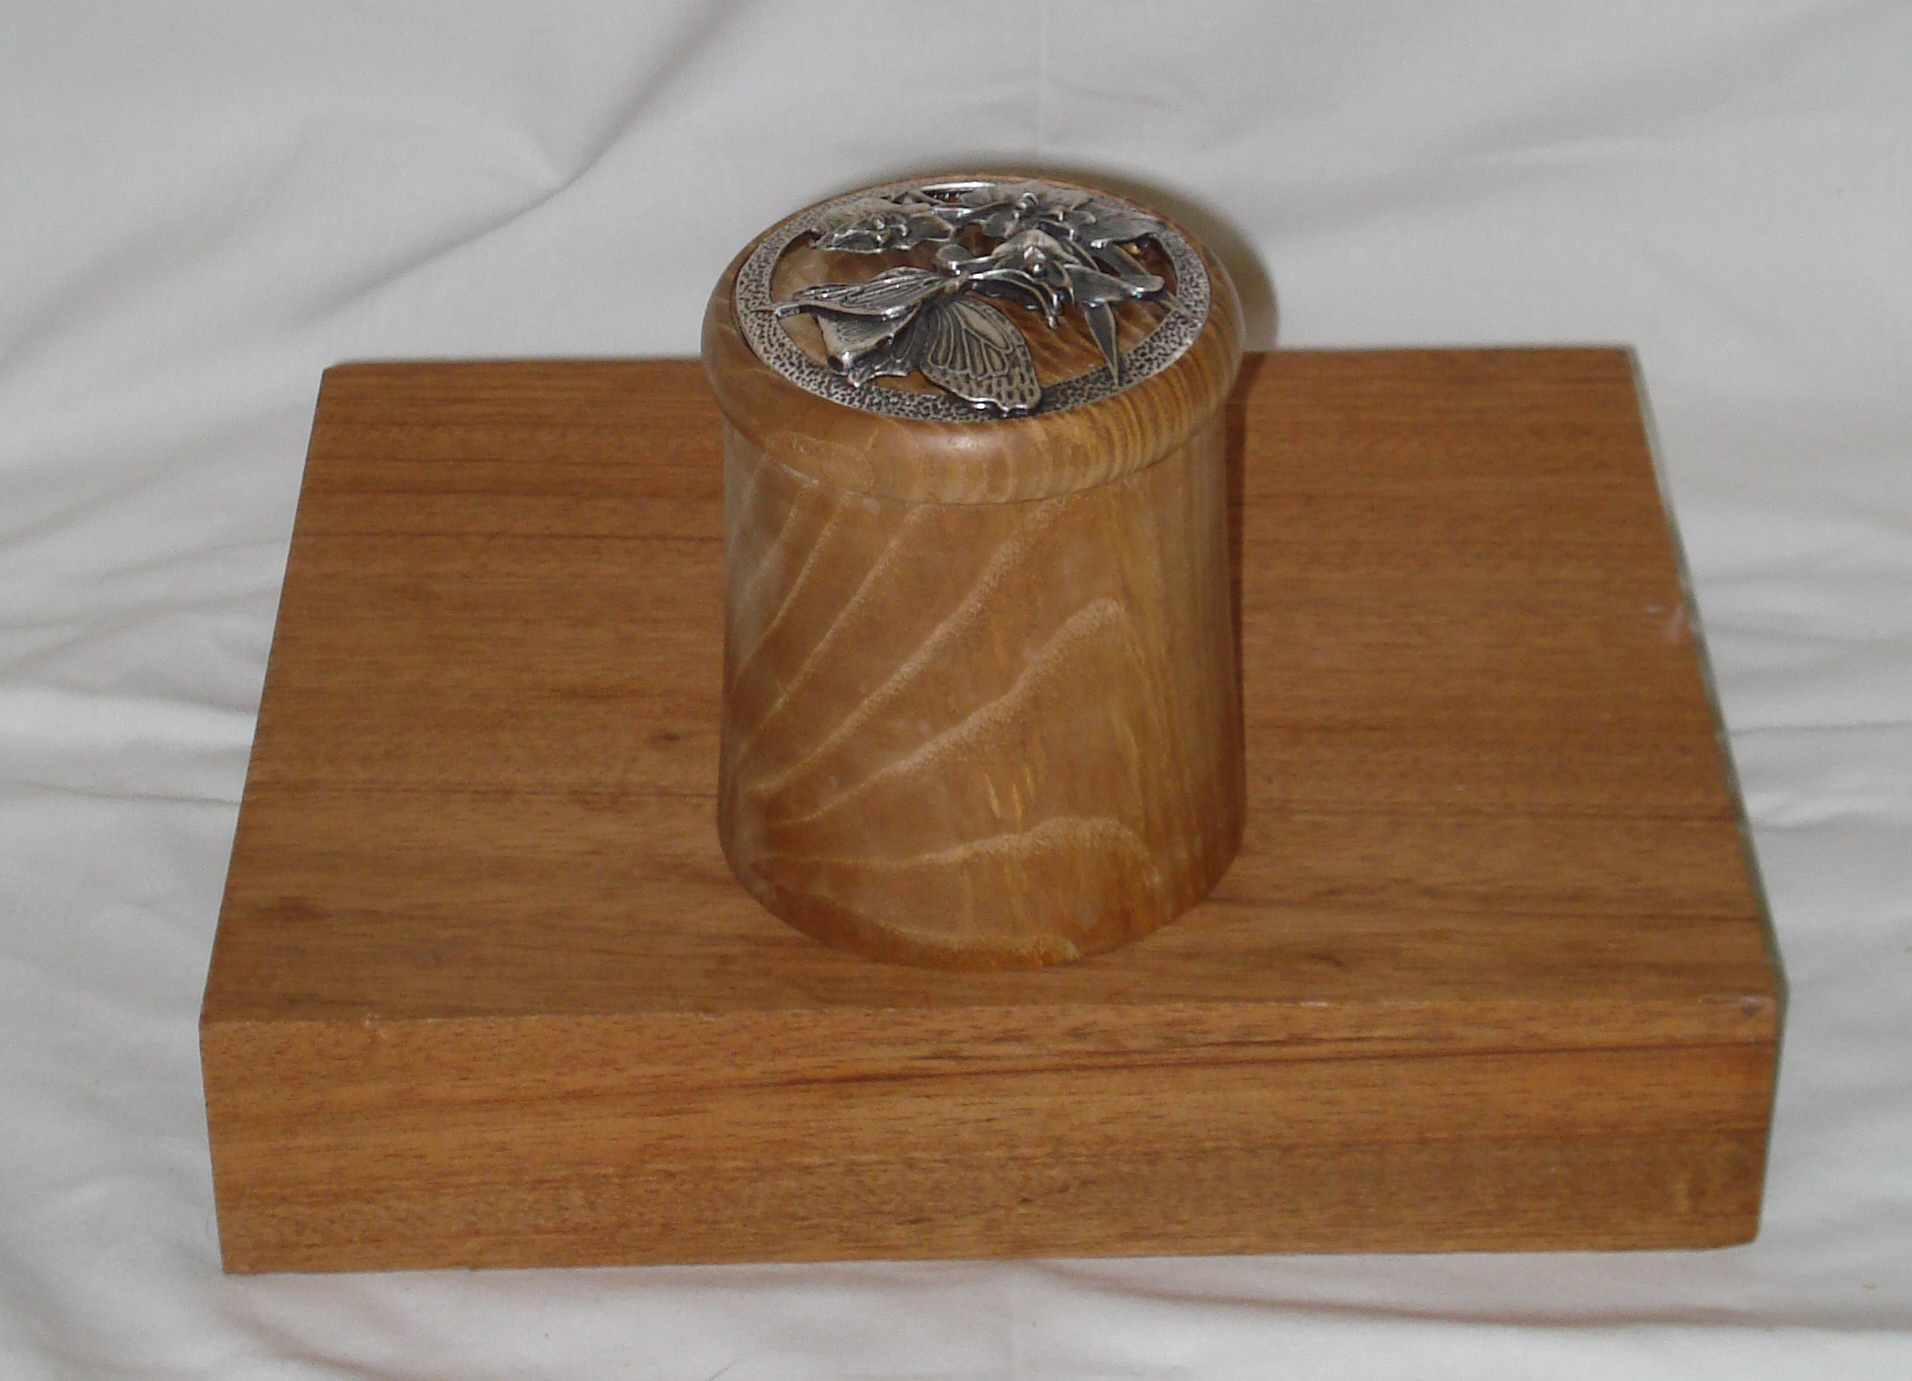 Ash box with a pewter lid insert